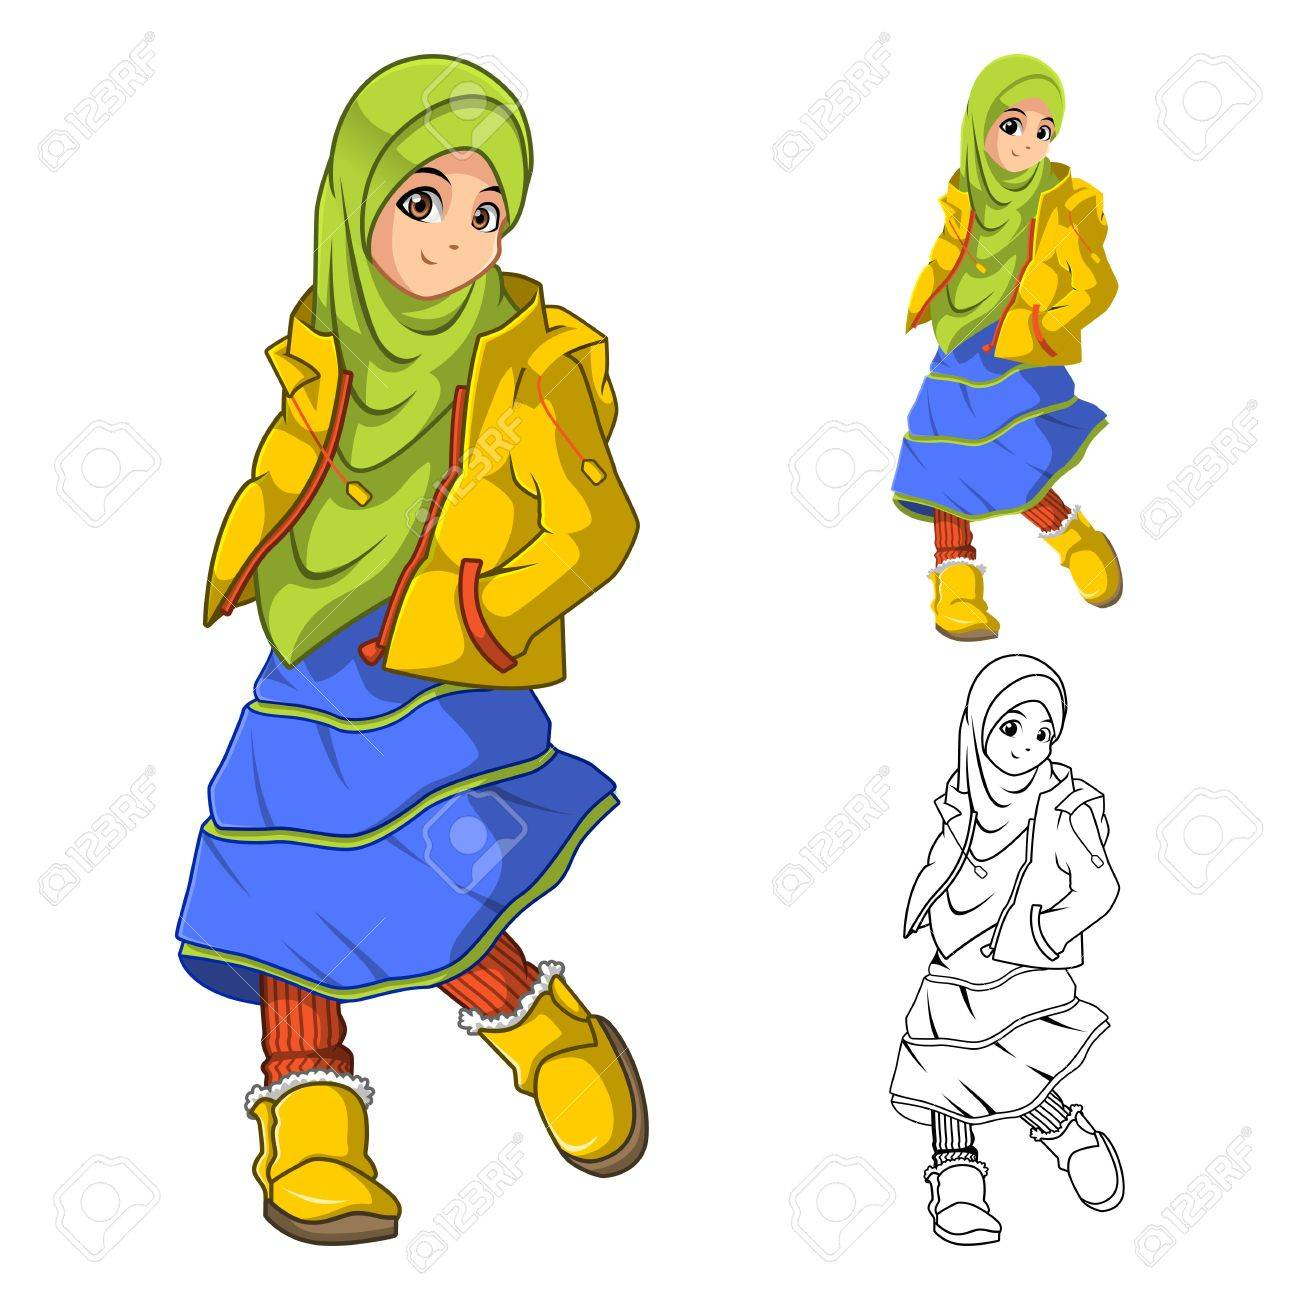 Muslim Girl Fashion Wearing Green Veil Or Scarf With Yellow Jacket